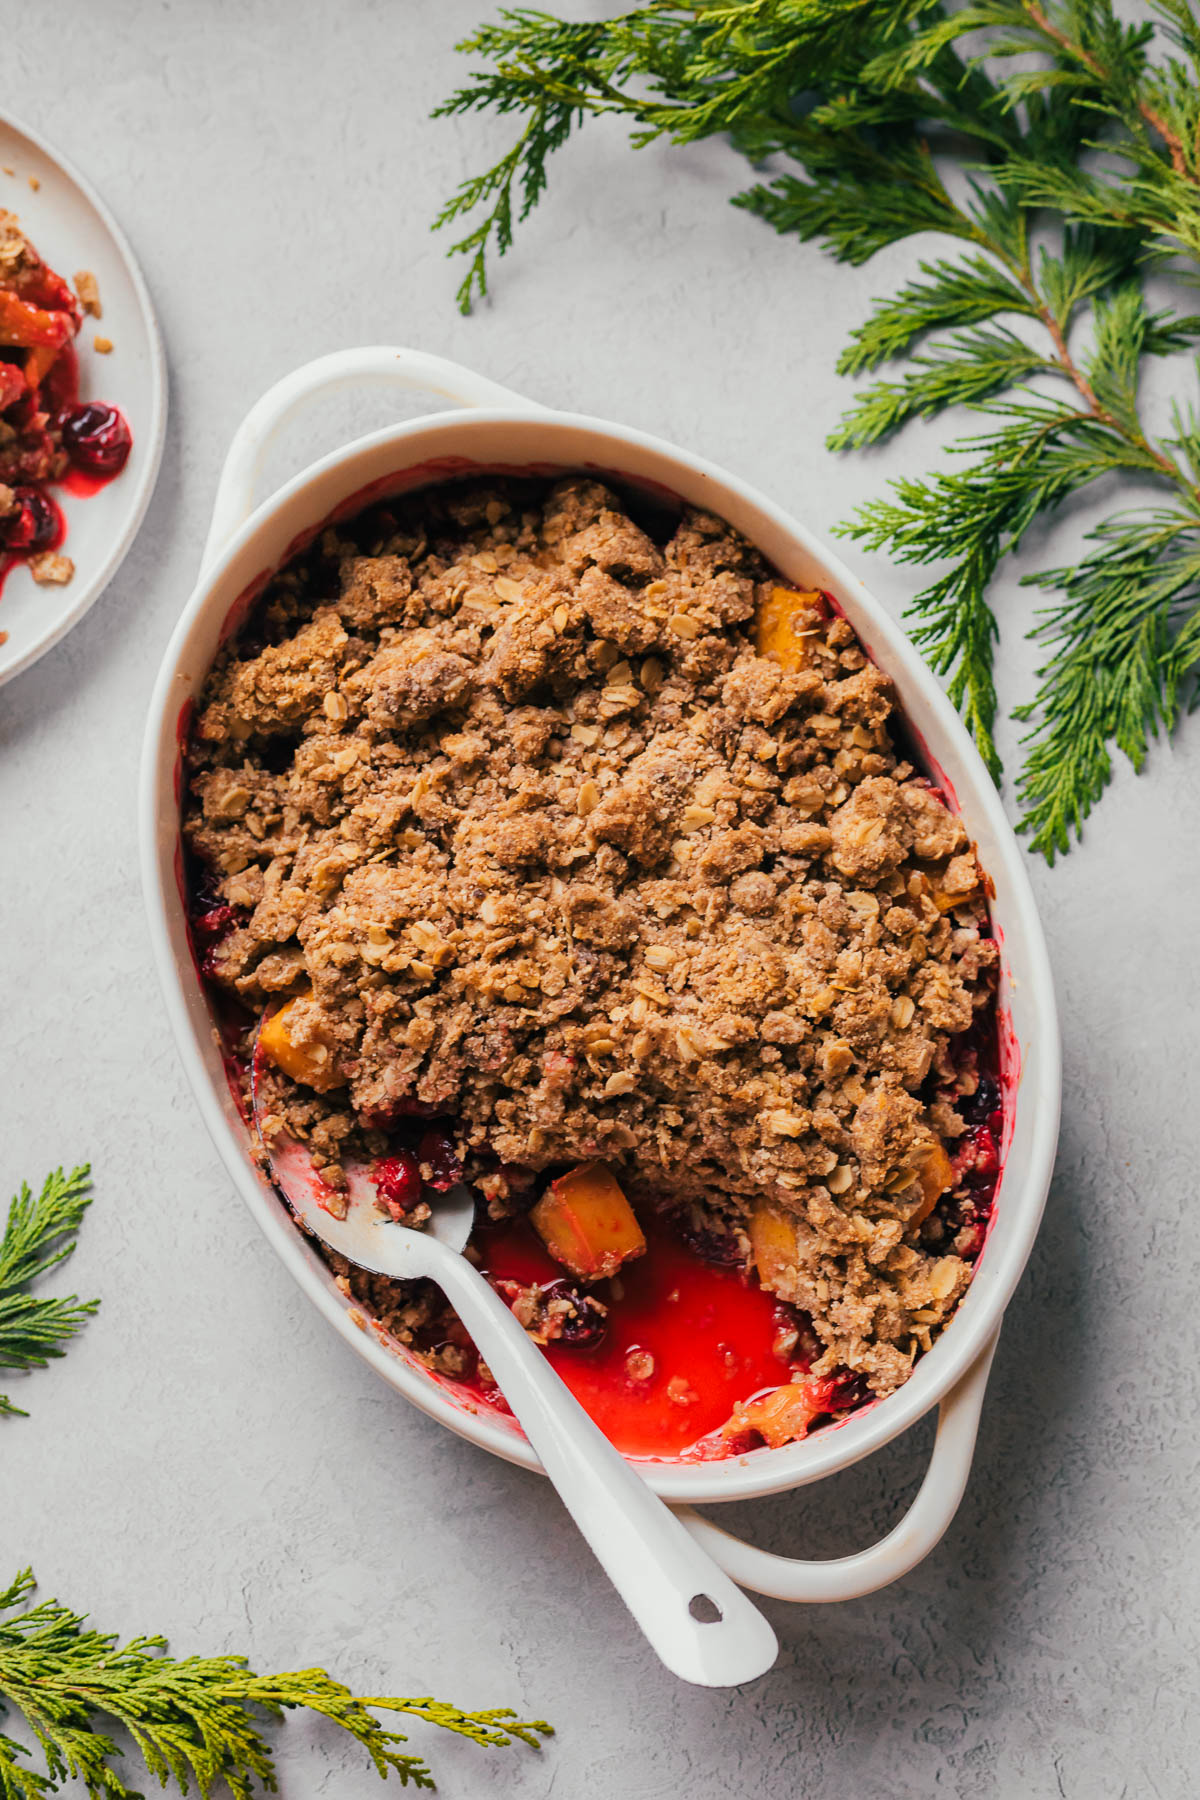 Cranberry crisp with a spoonful taken out.